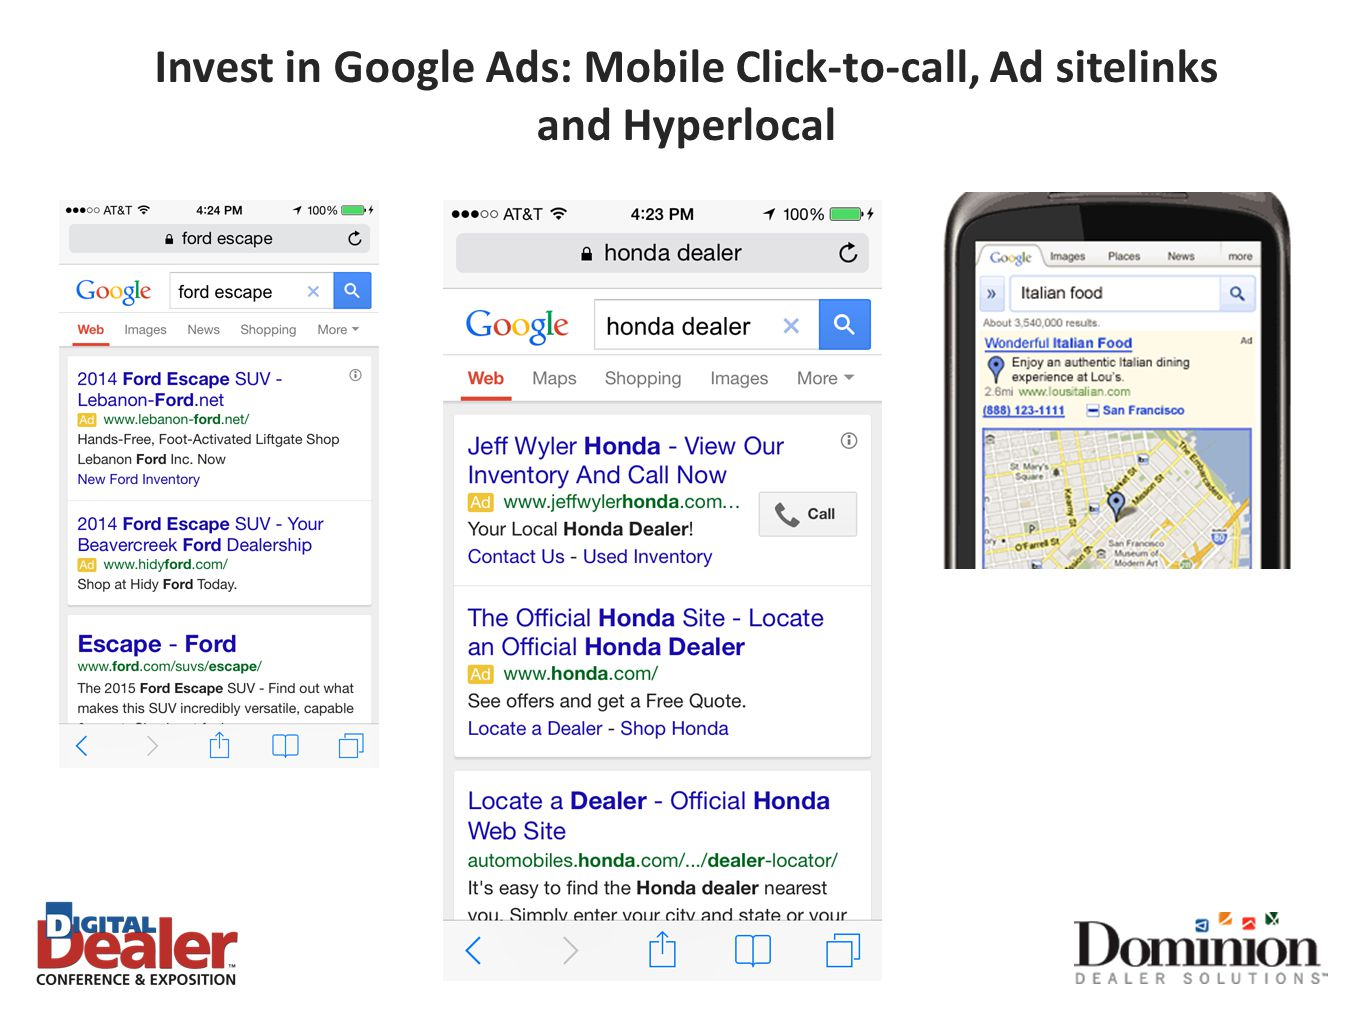 Invest in Google Ads: Mobile Click-to-call, Ad sitelinks and Hyperlocal